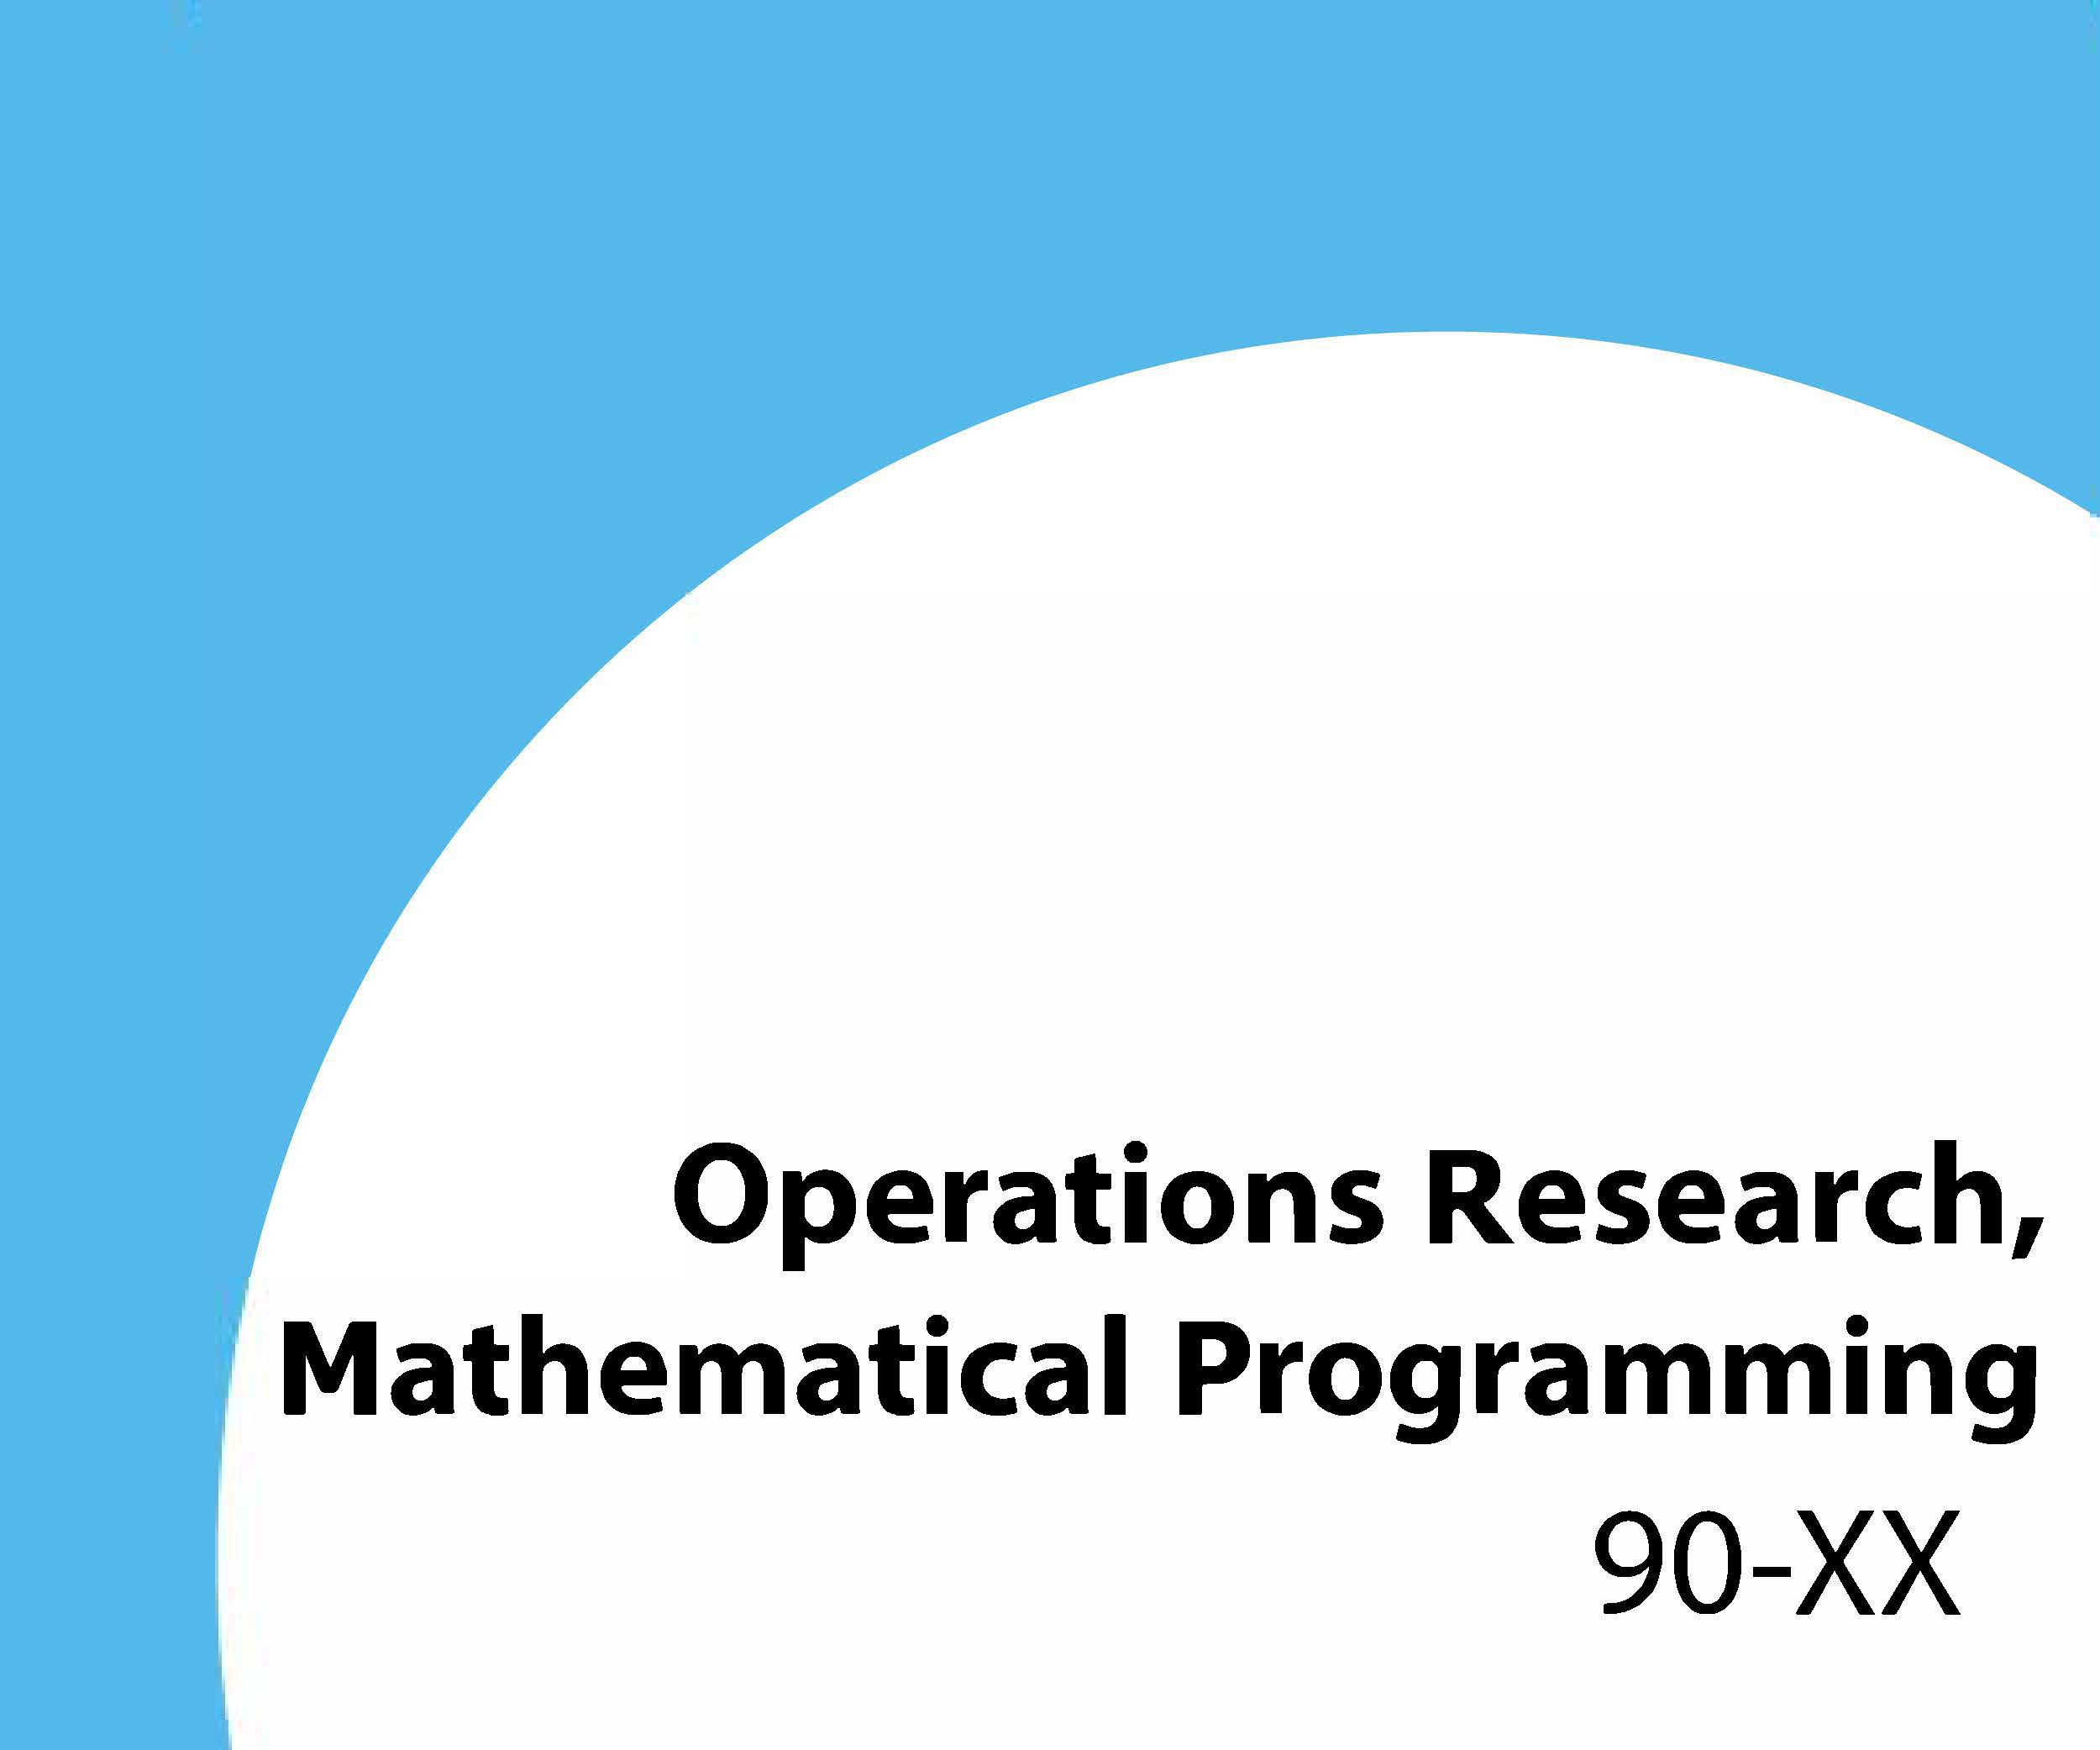 90-xx Operations research, mathematical programming